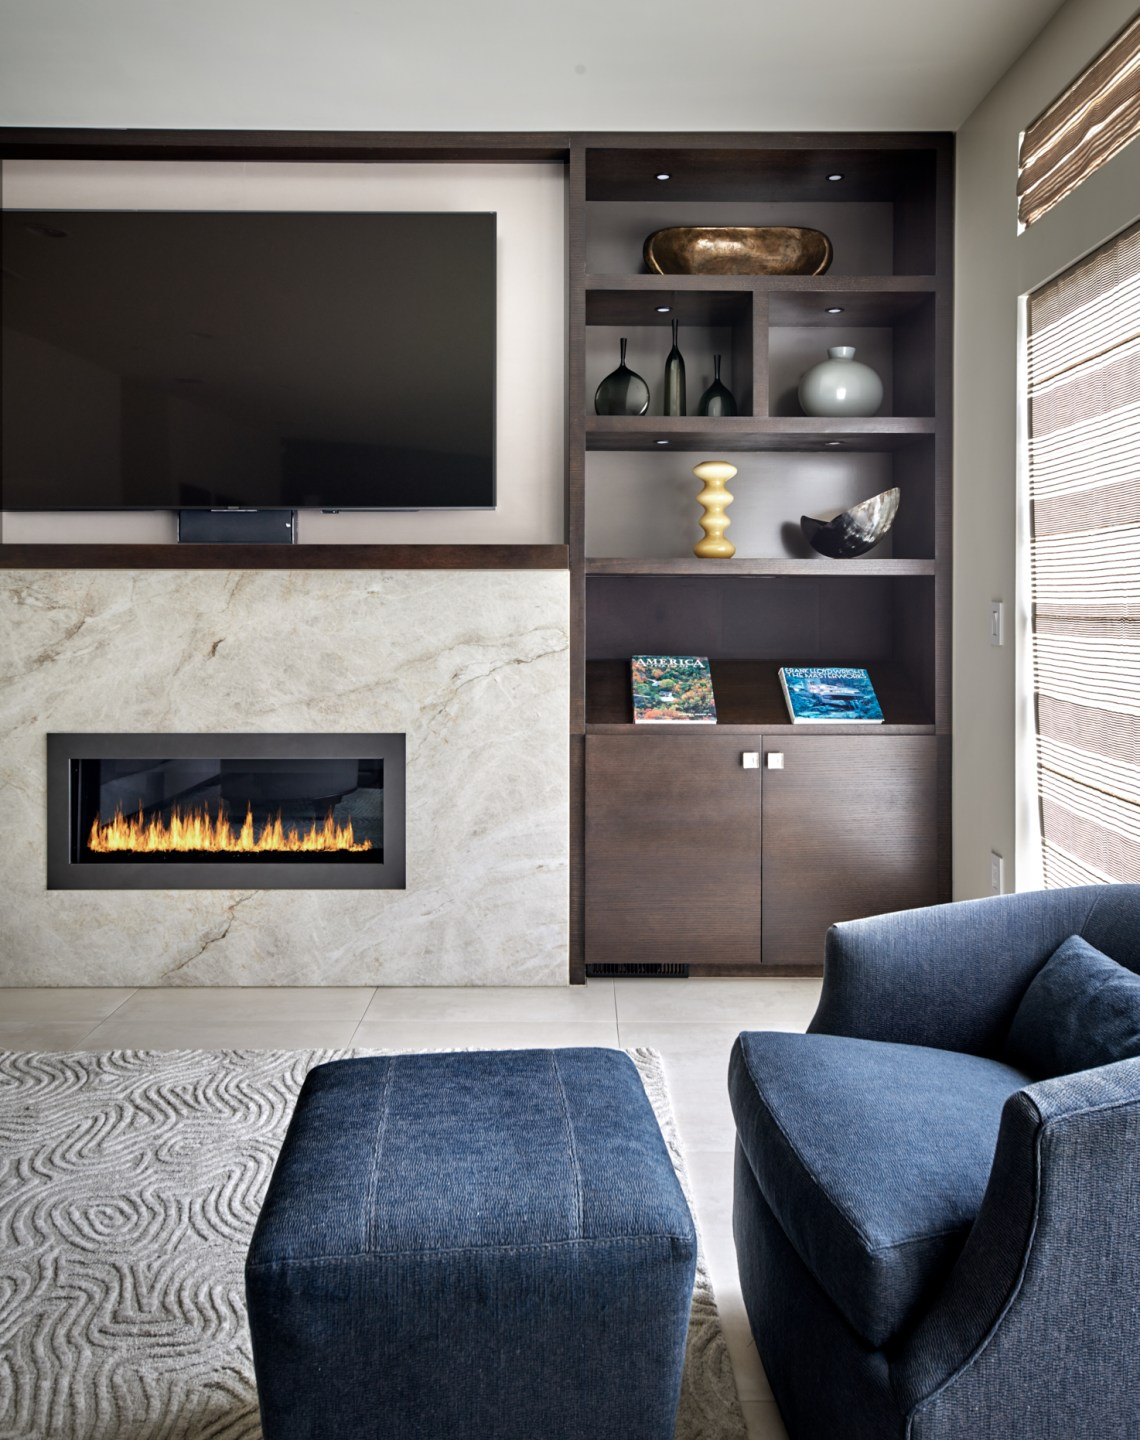 Blue swivel chair and ottoman in front of contemporary fire place with quartzite surround and patterned rug in family room